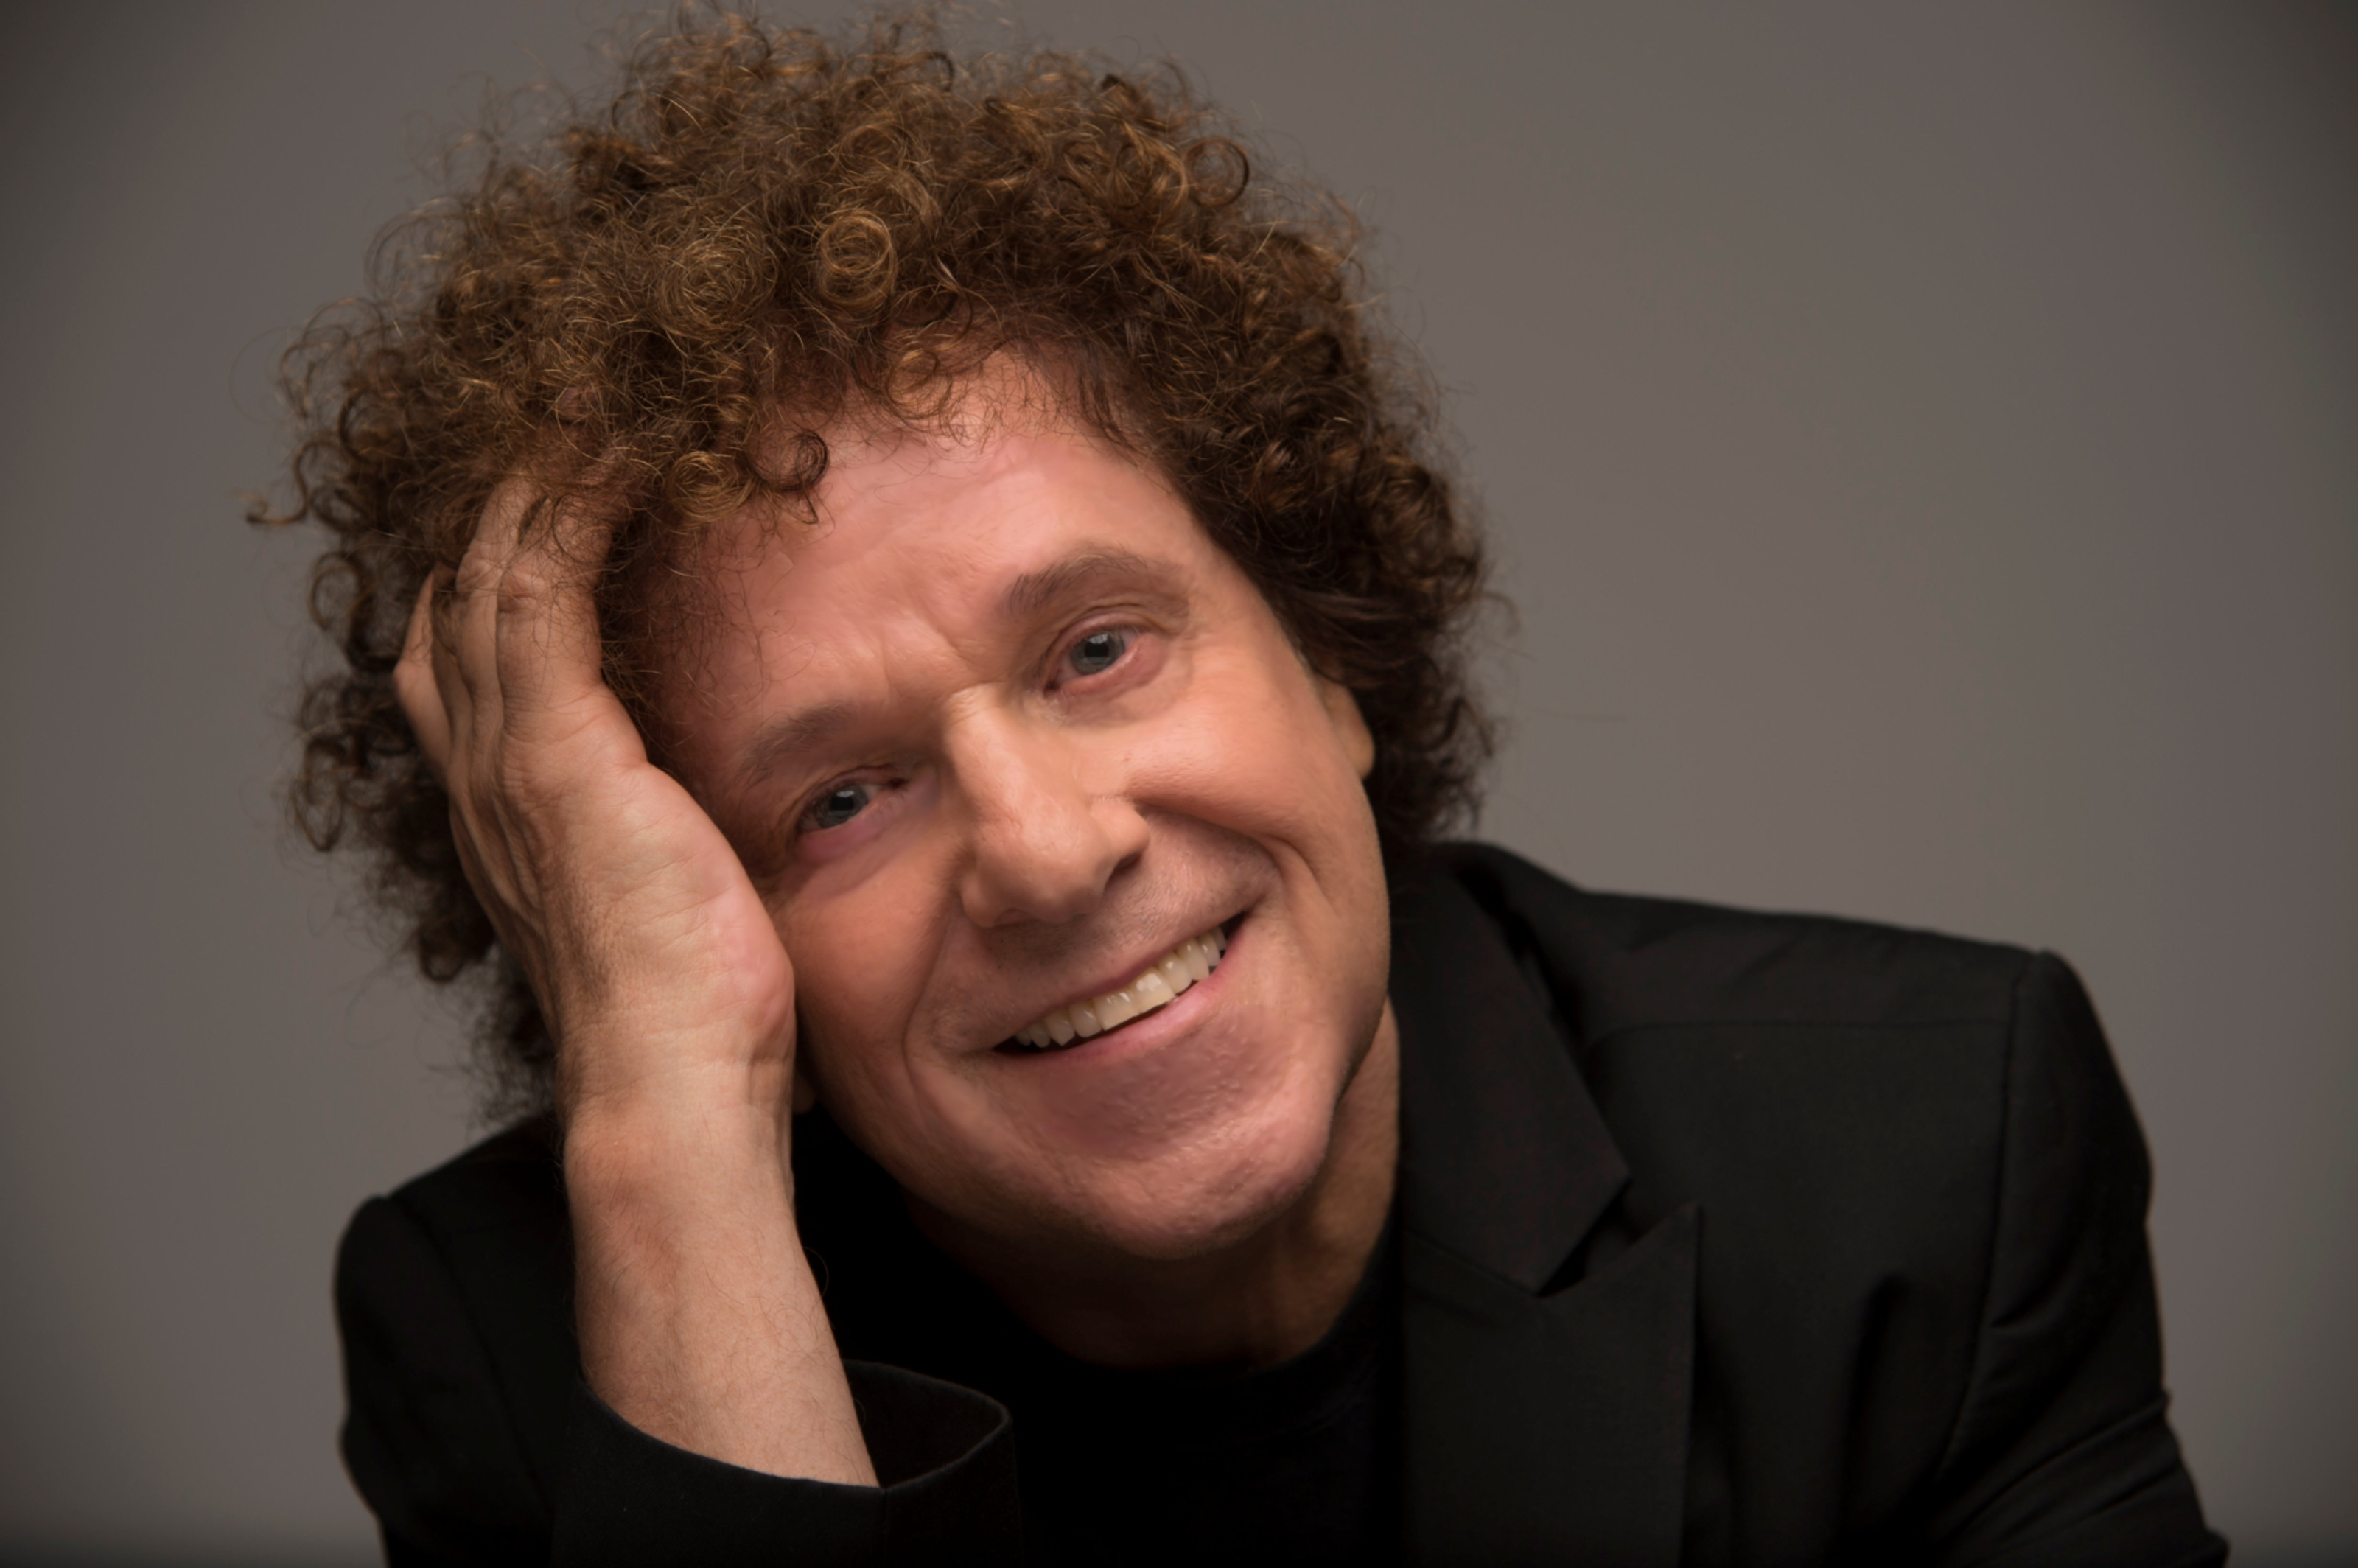 Leo Sayer is playing at Perth Concert Hall tonight.